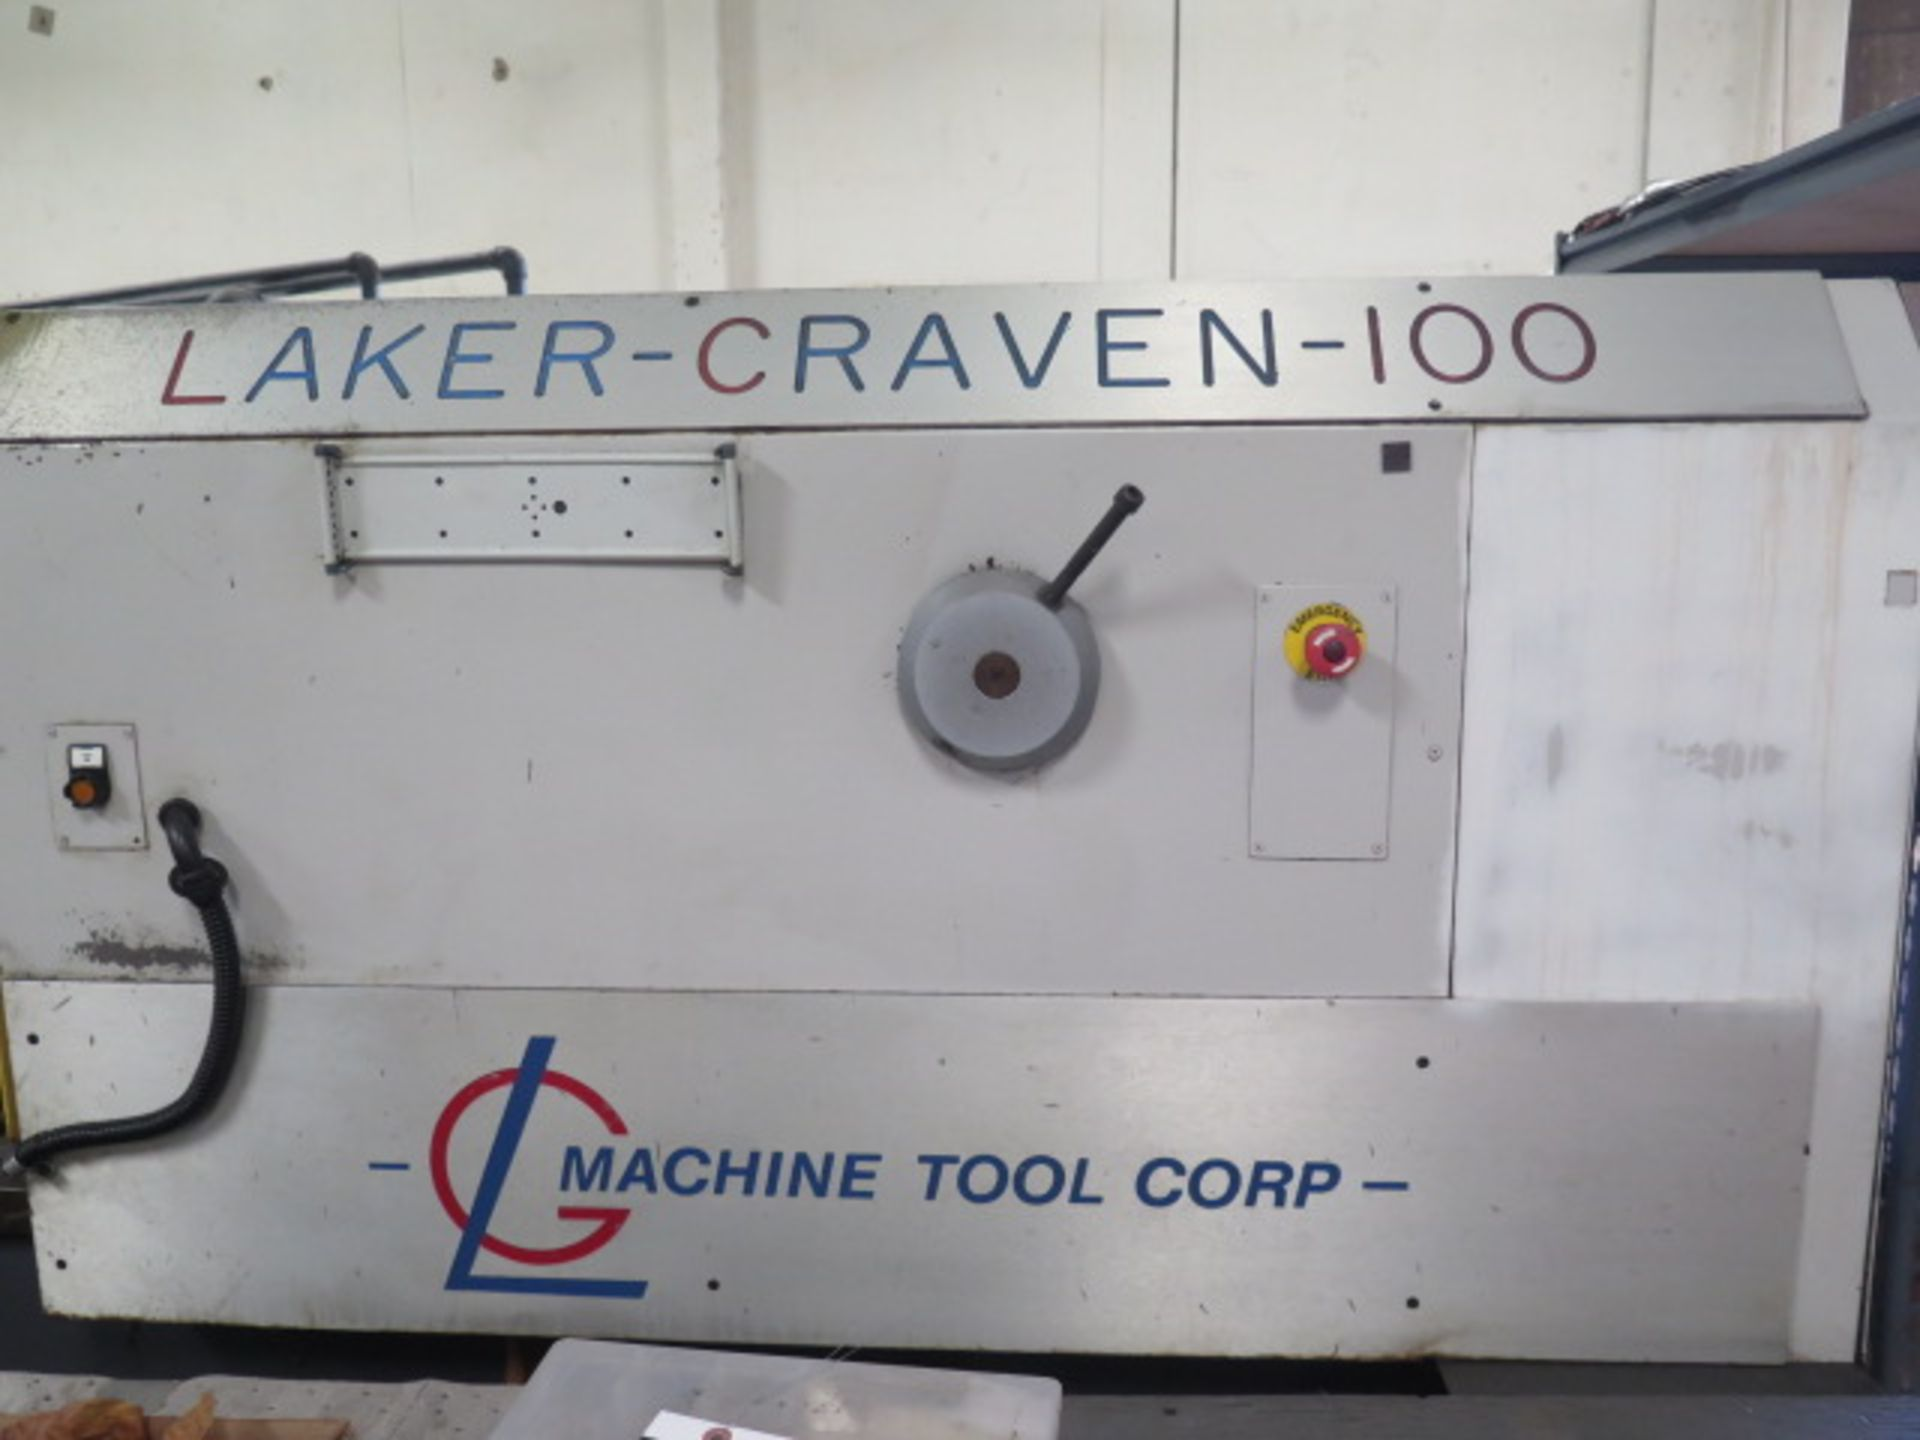 Laker-Craven-100 CNC Deep Hole Drilling Machine s/n 1241 w/ Fanuc Power MATE Controls, SOLD AS IS - Image 8 of 41